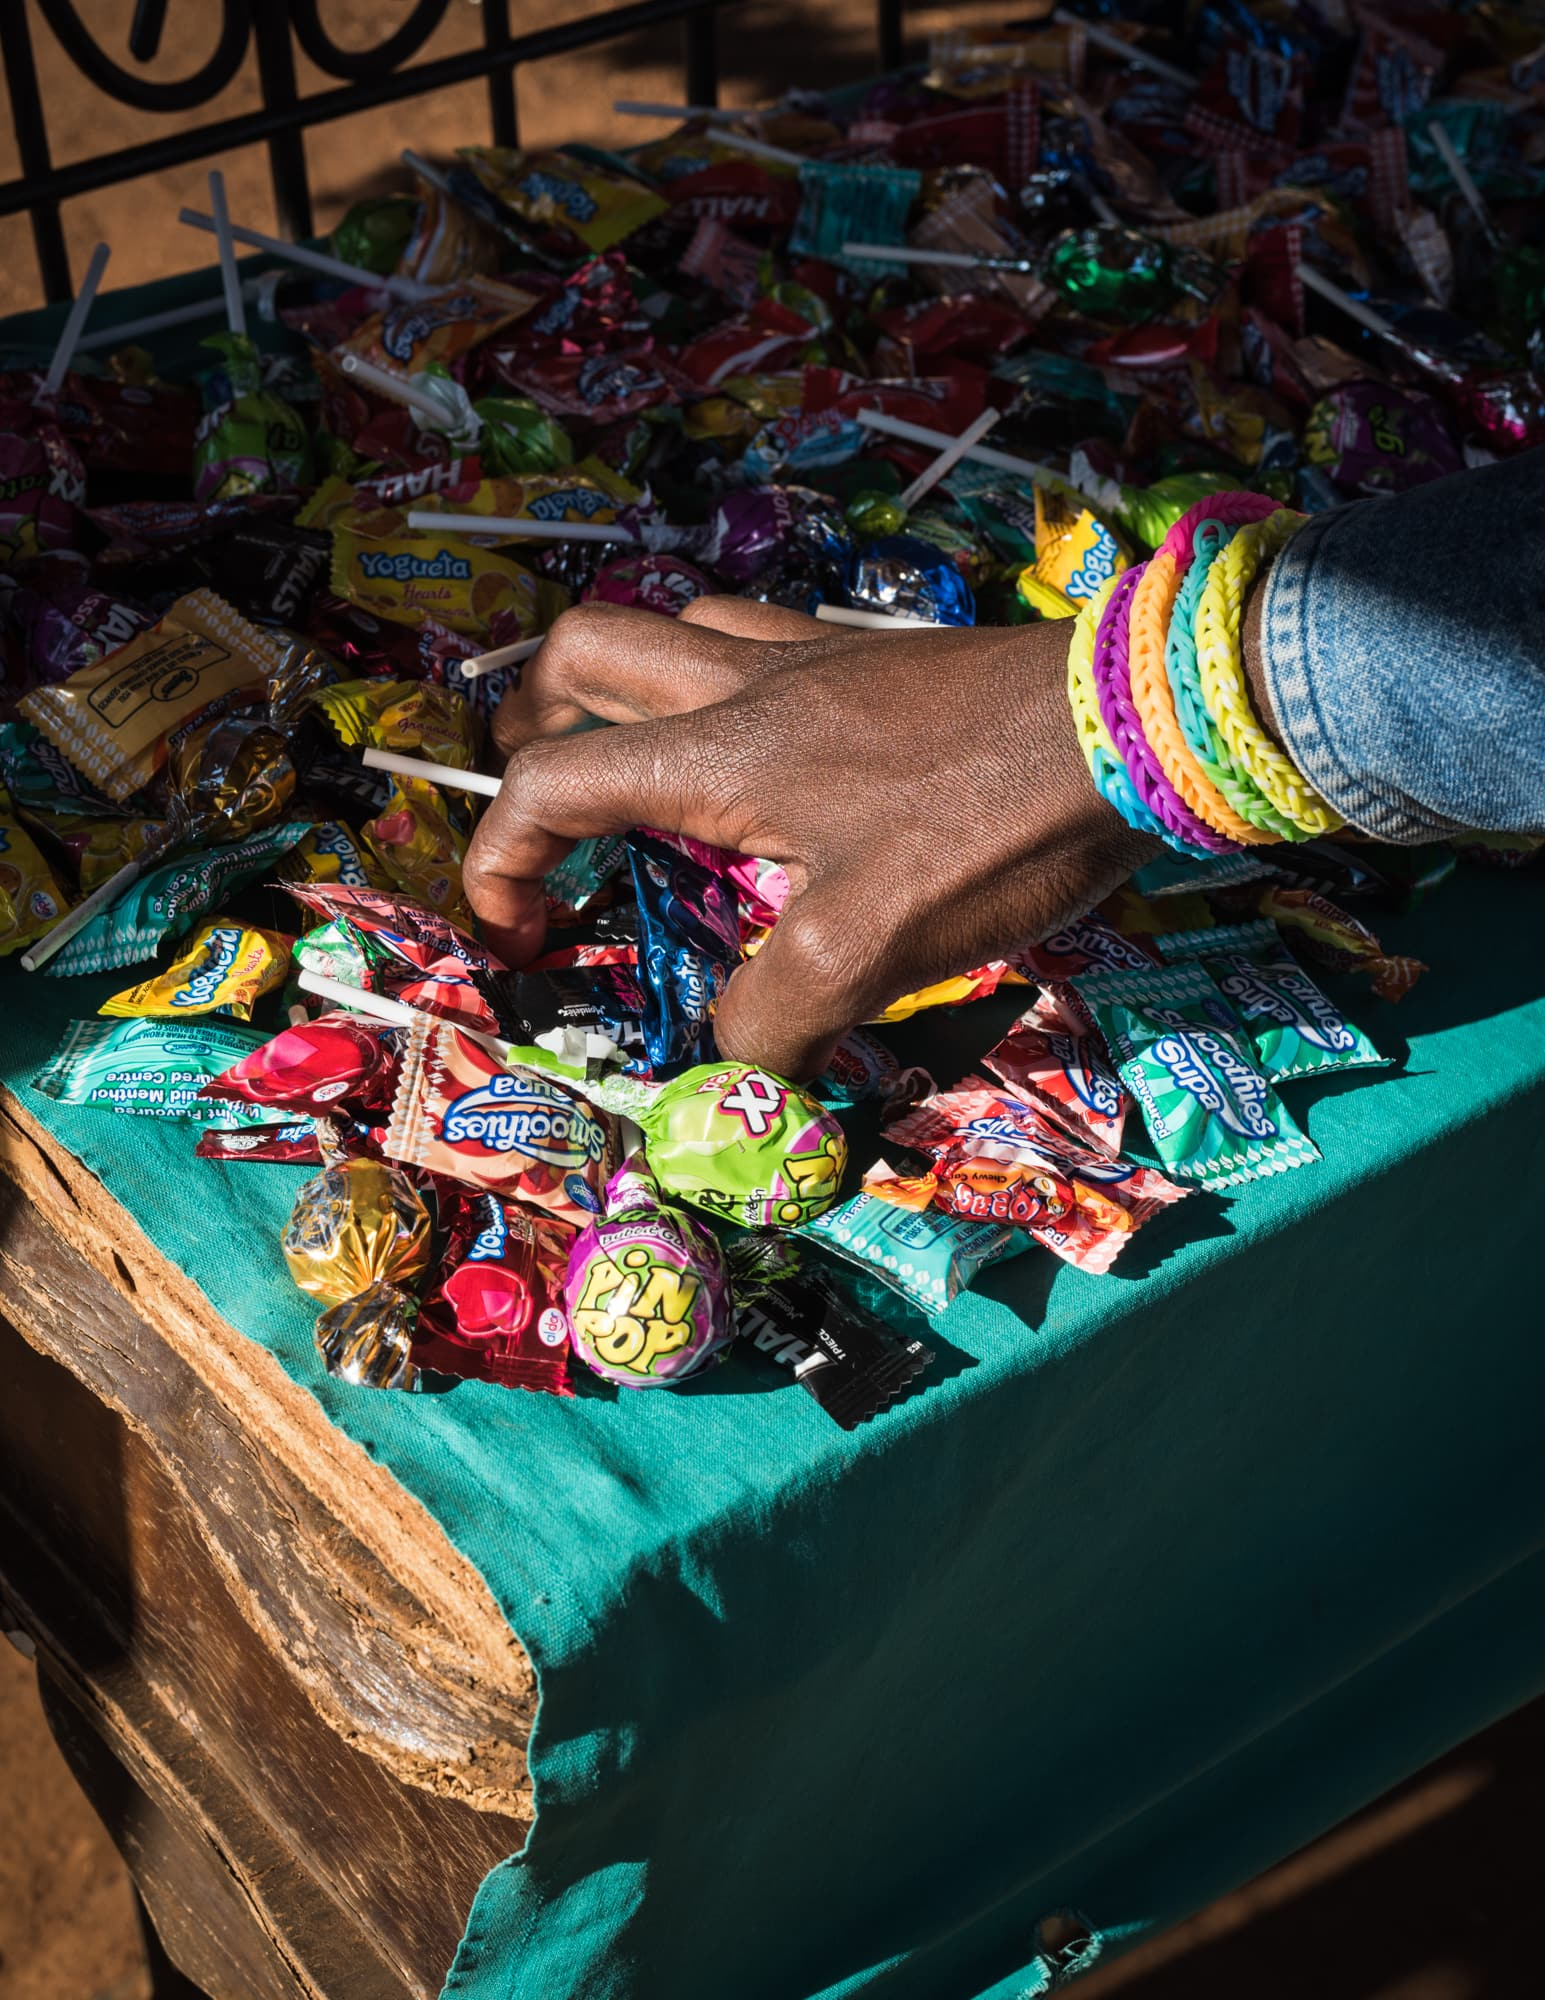 How to get home — Sweets stand and handsign to Jabulani Mall